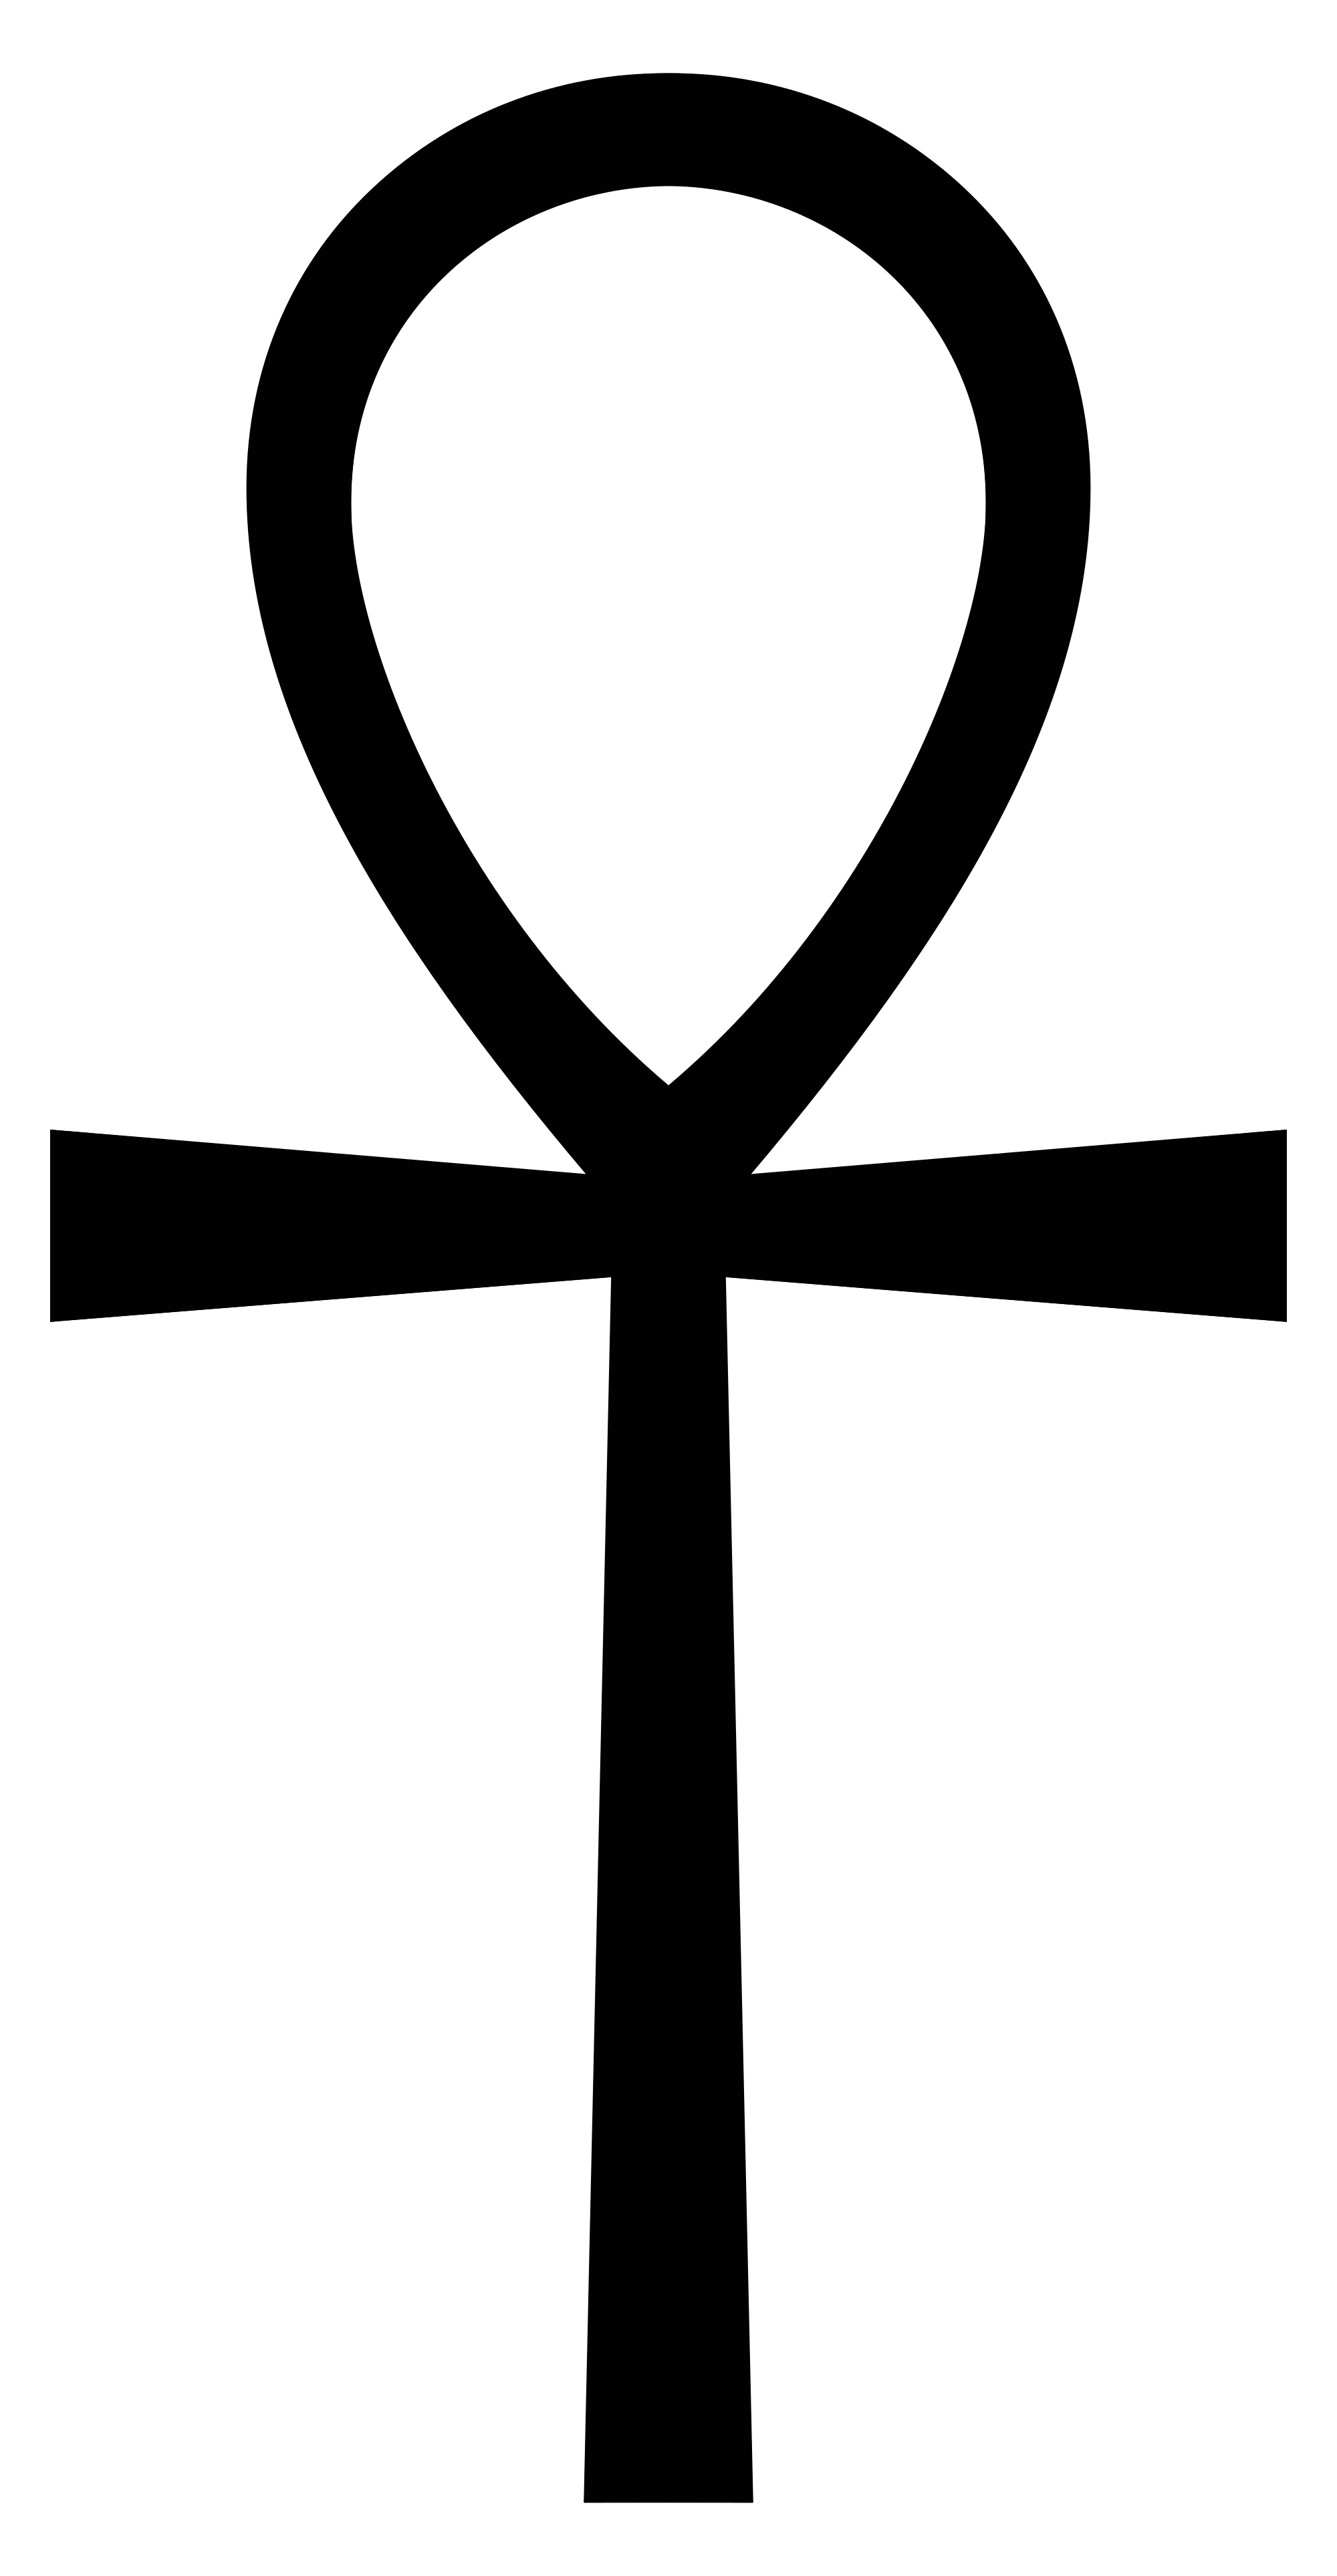 Sign svg egyptian. File ankh wikimedia commons